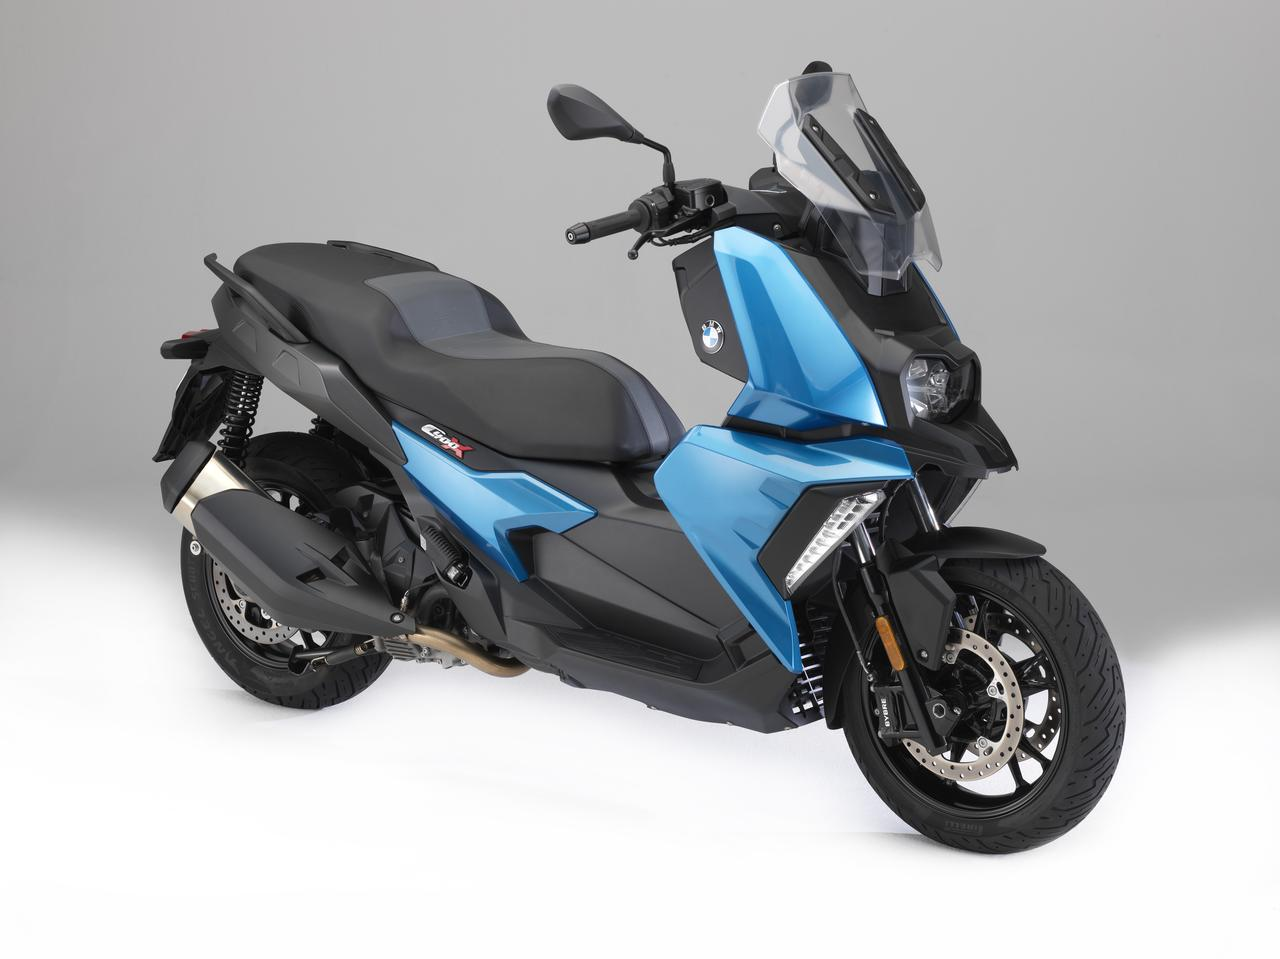 Images : 7番目の画像 - BMW C 400 X - LAWRENCE - Motorcycle x Cars + α = Your Life.